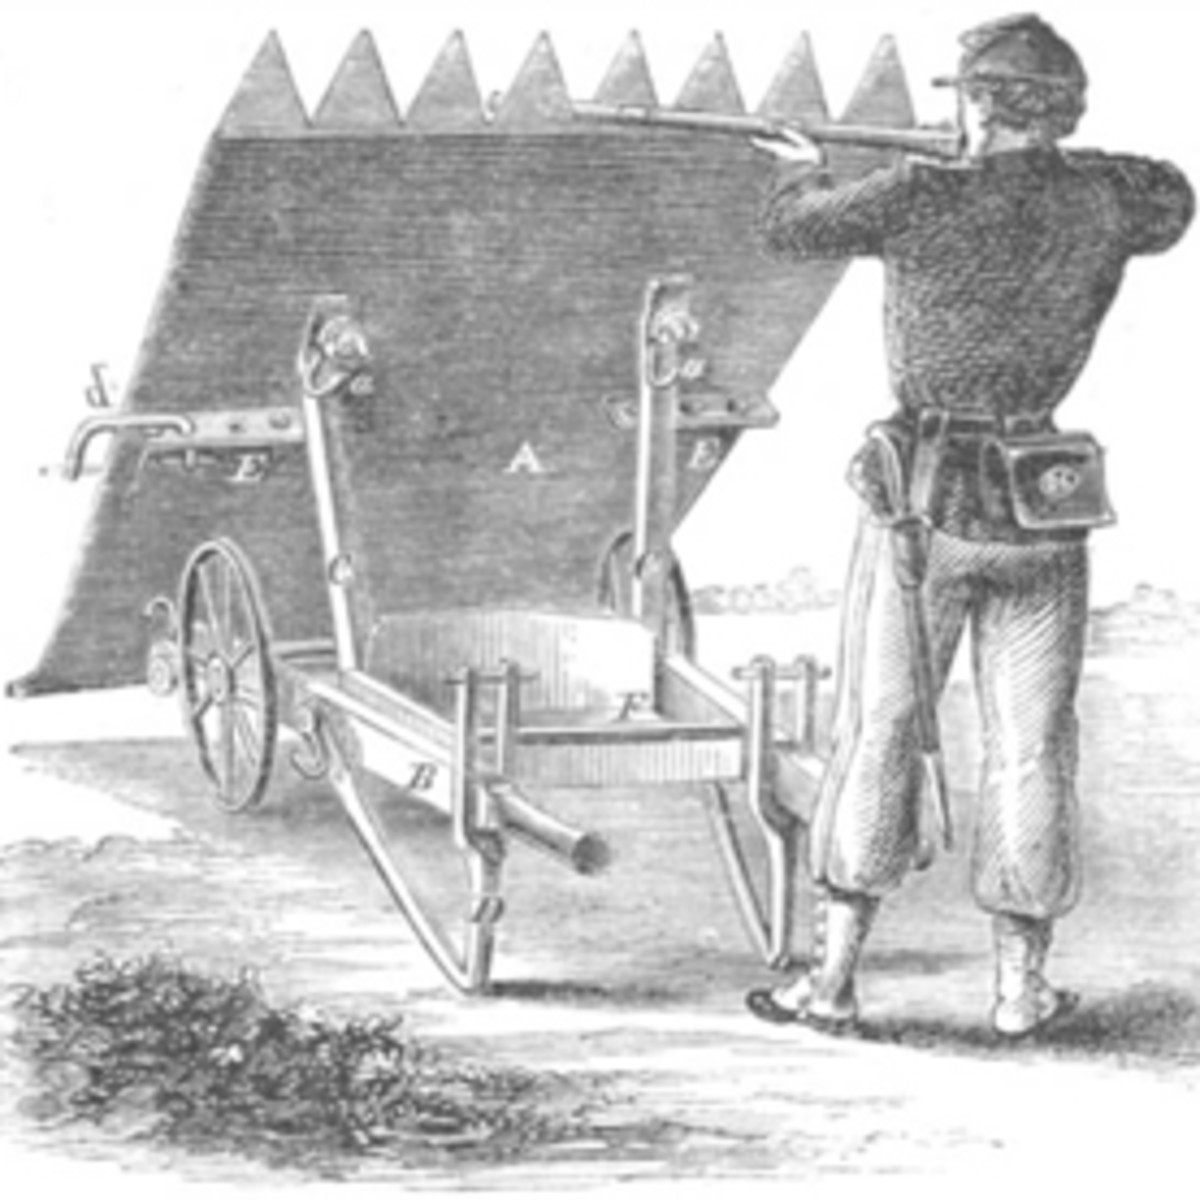 Sketch - a portable breastwork, an innovation that proved of dubious value if it ever was tested